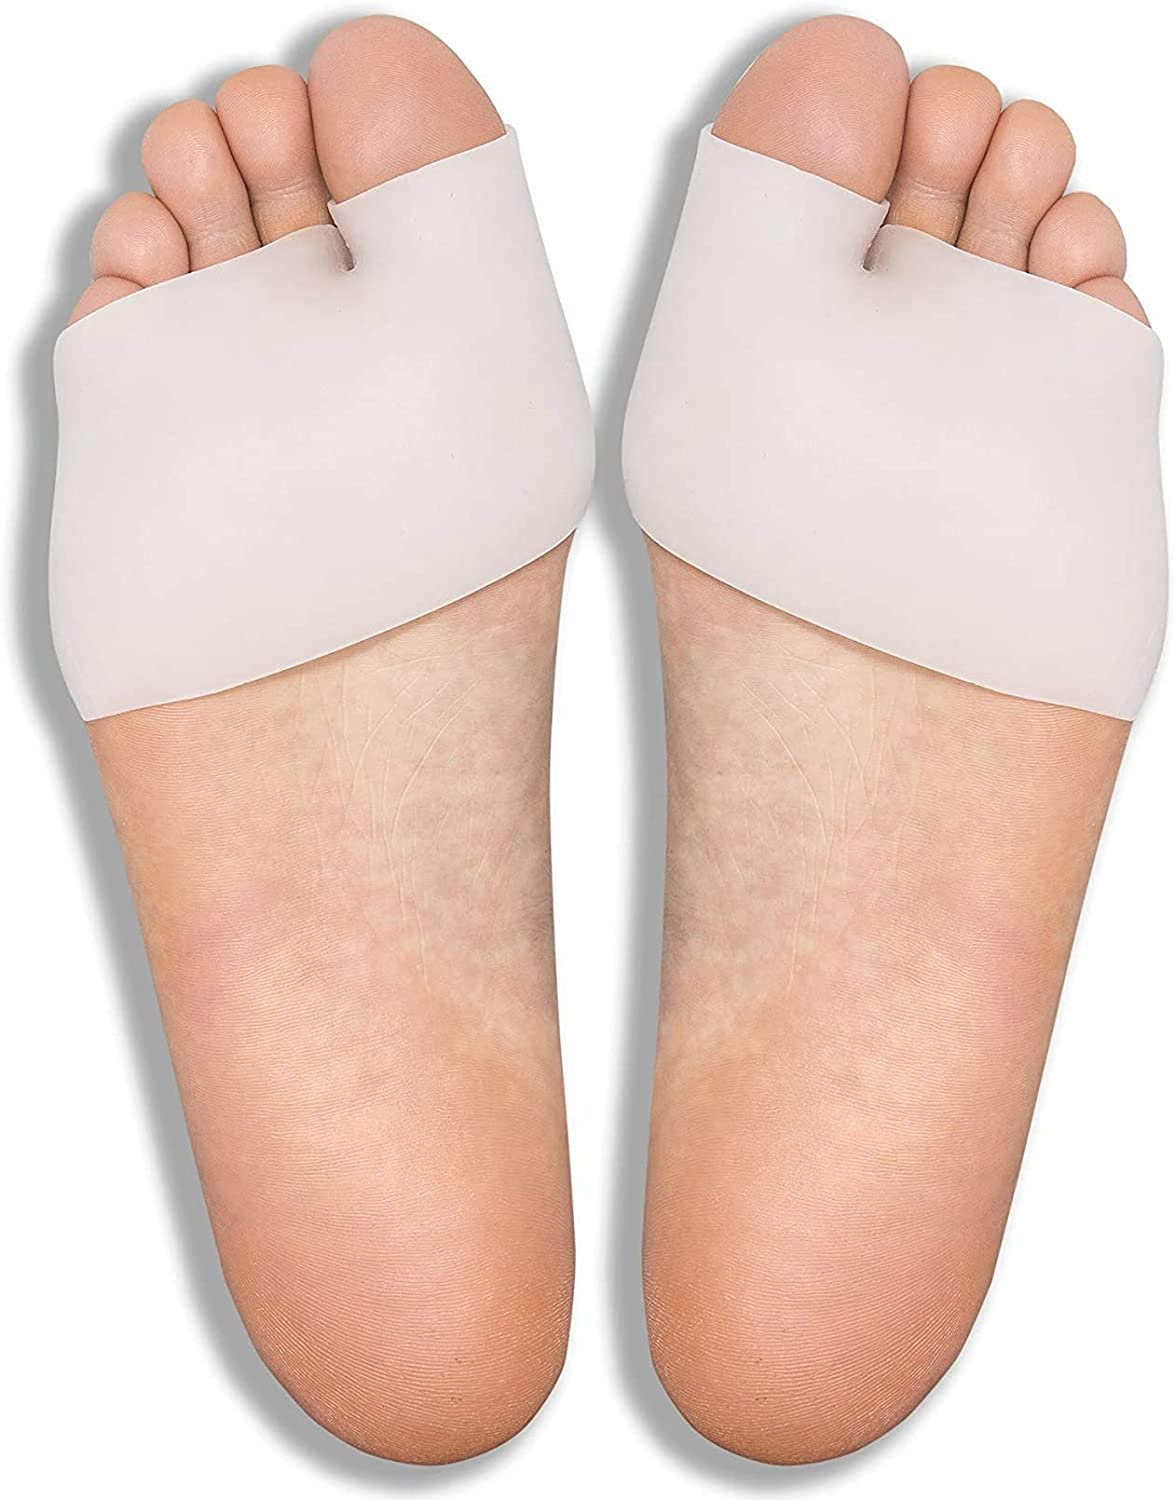 Metatarsal Sleeves Plus - Soft Gel Ball of Foot Pads - Mortons Neuroma Callus Metatarsal Foot Pain Relief Bunion Forefoot Cushioning (2 Pairs)